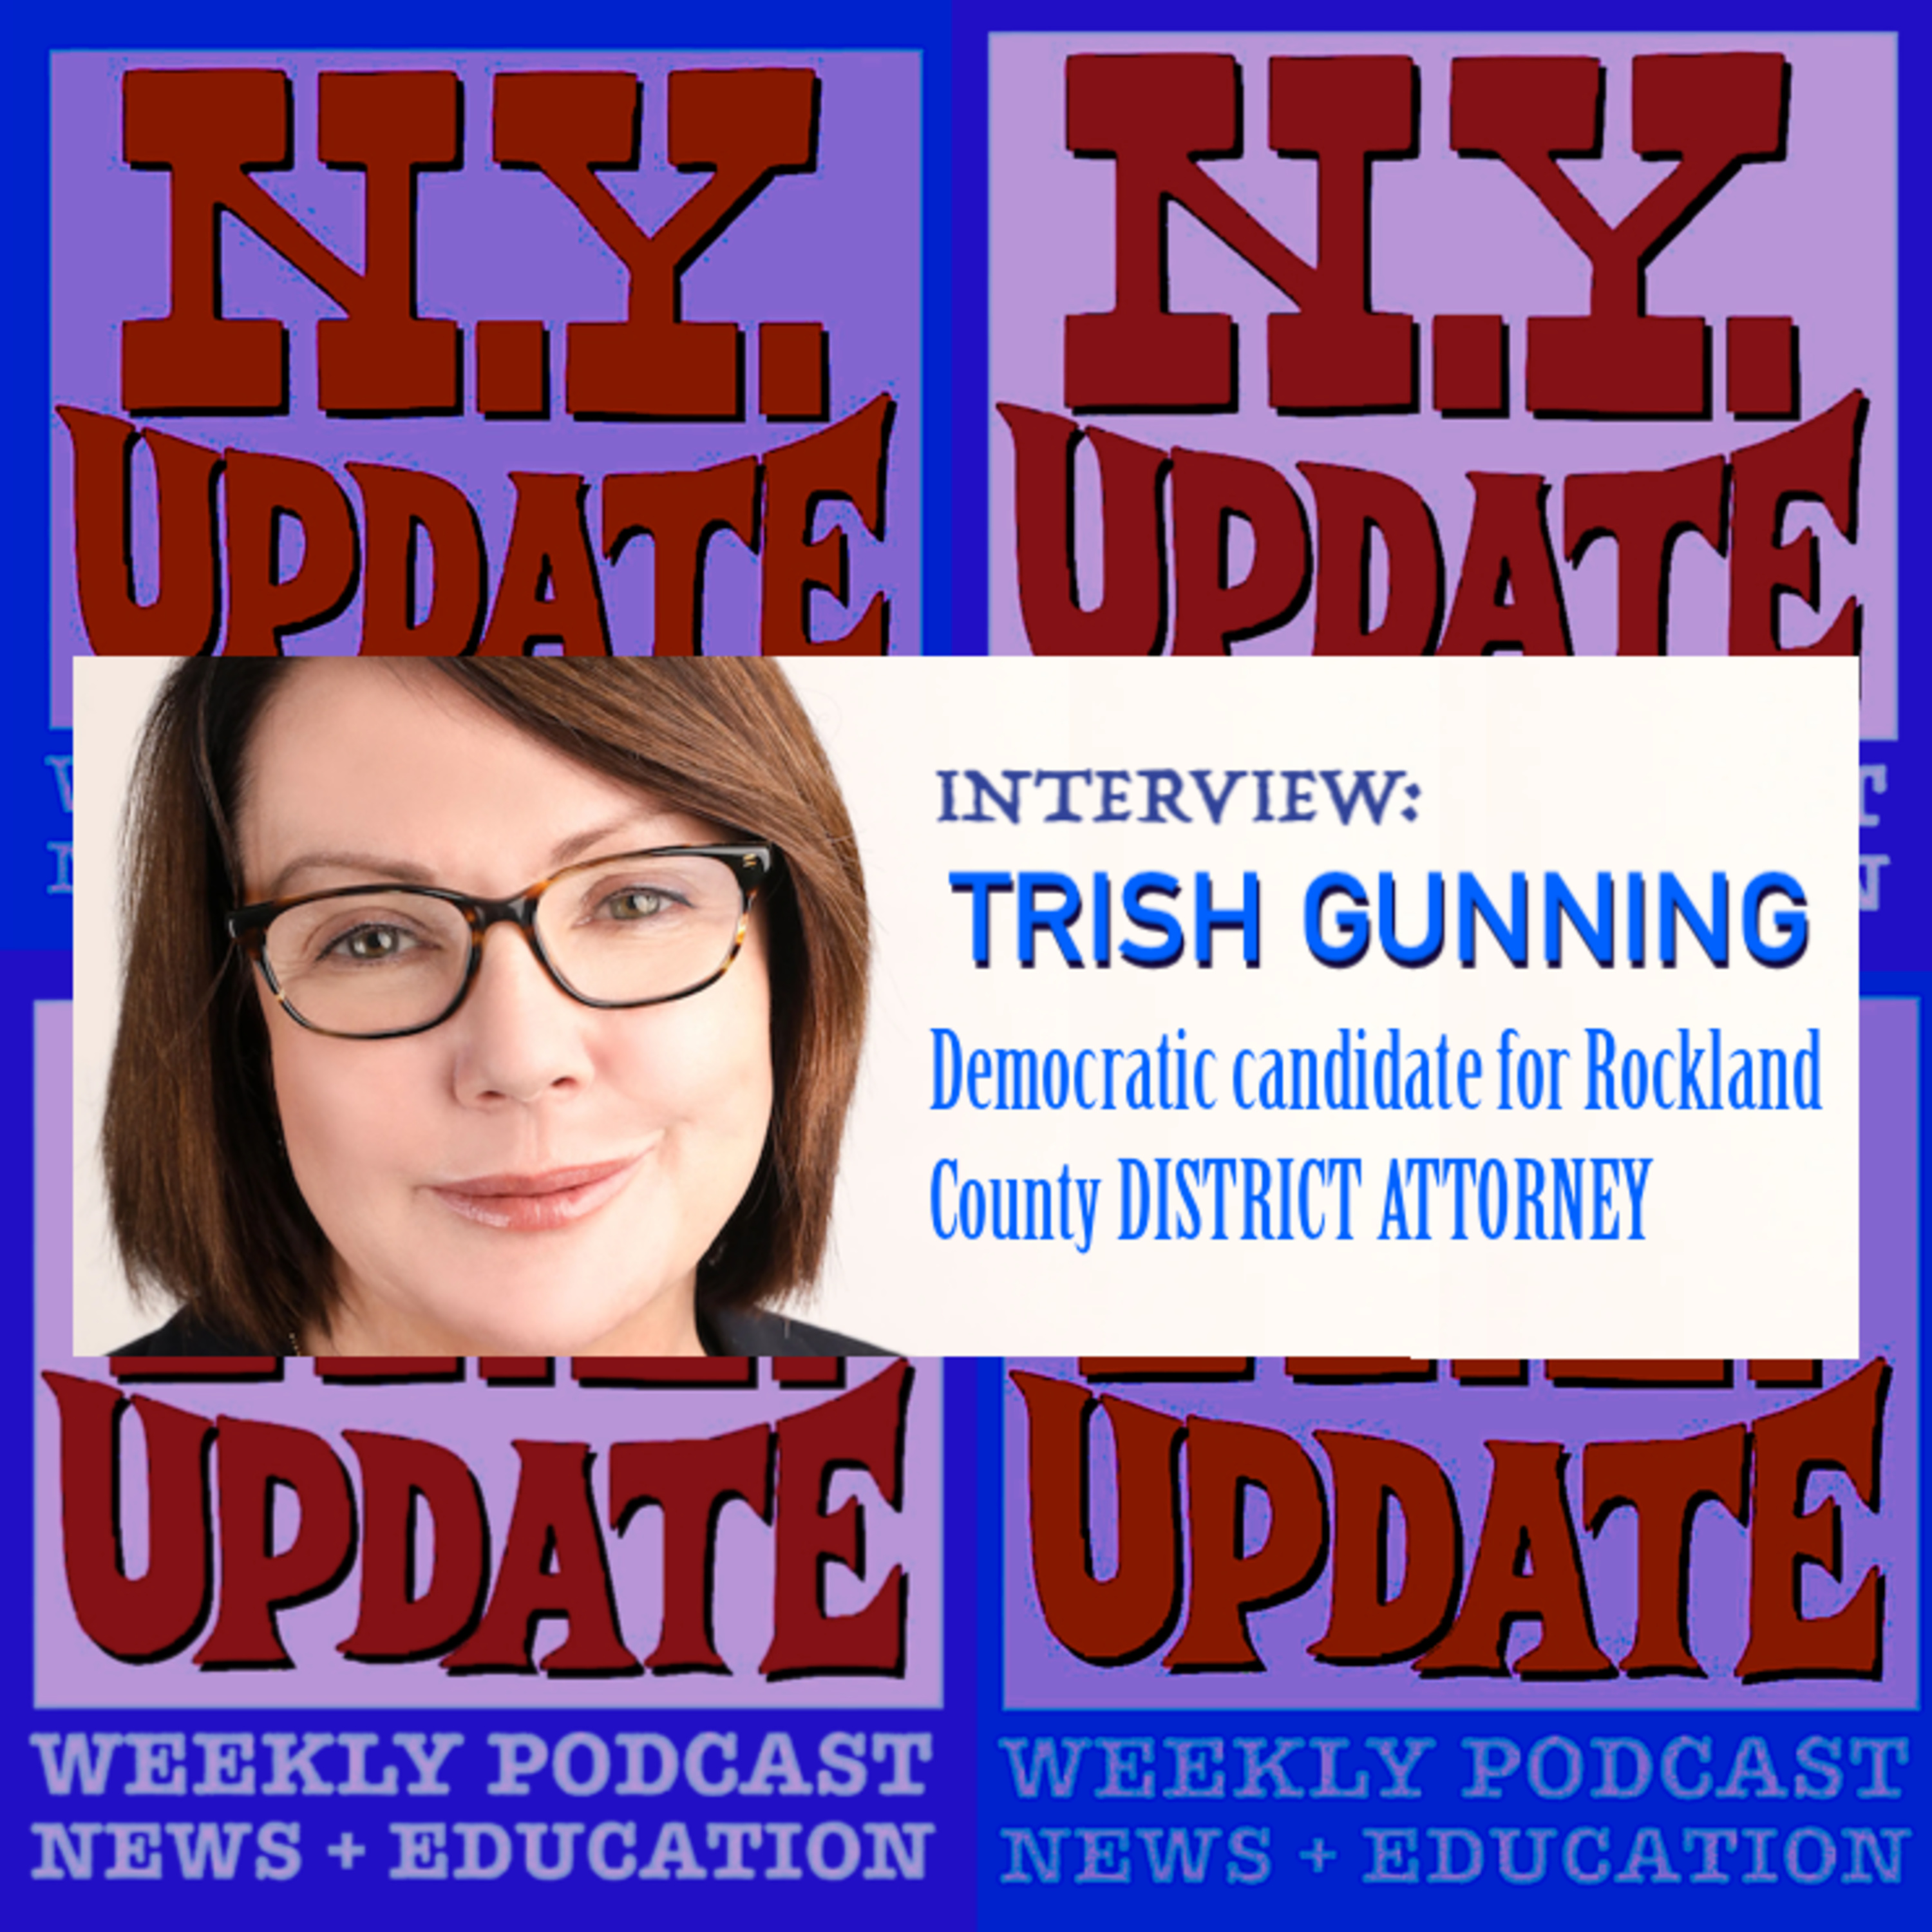 Patricia Gunning, candidate for Rockland County District Attorney